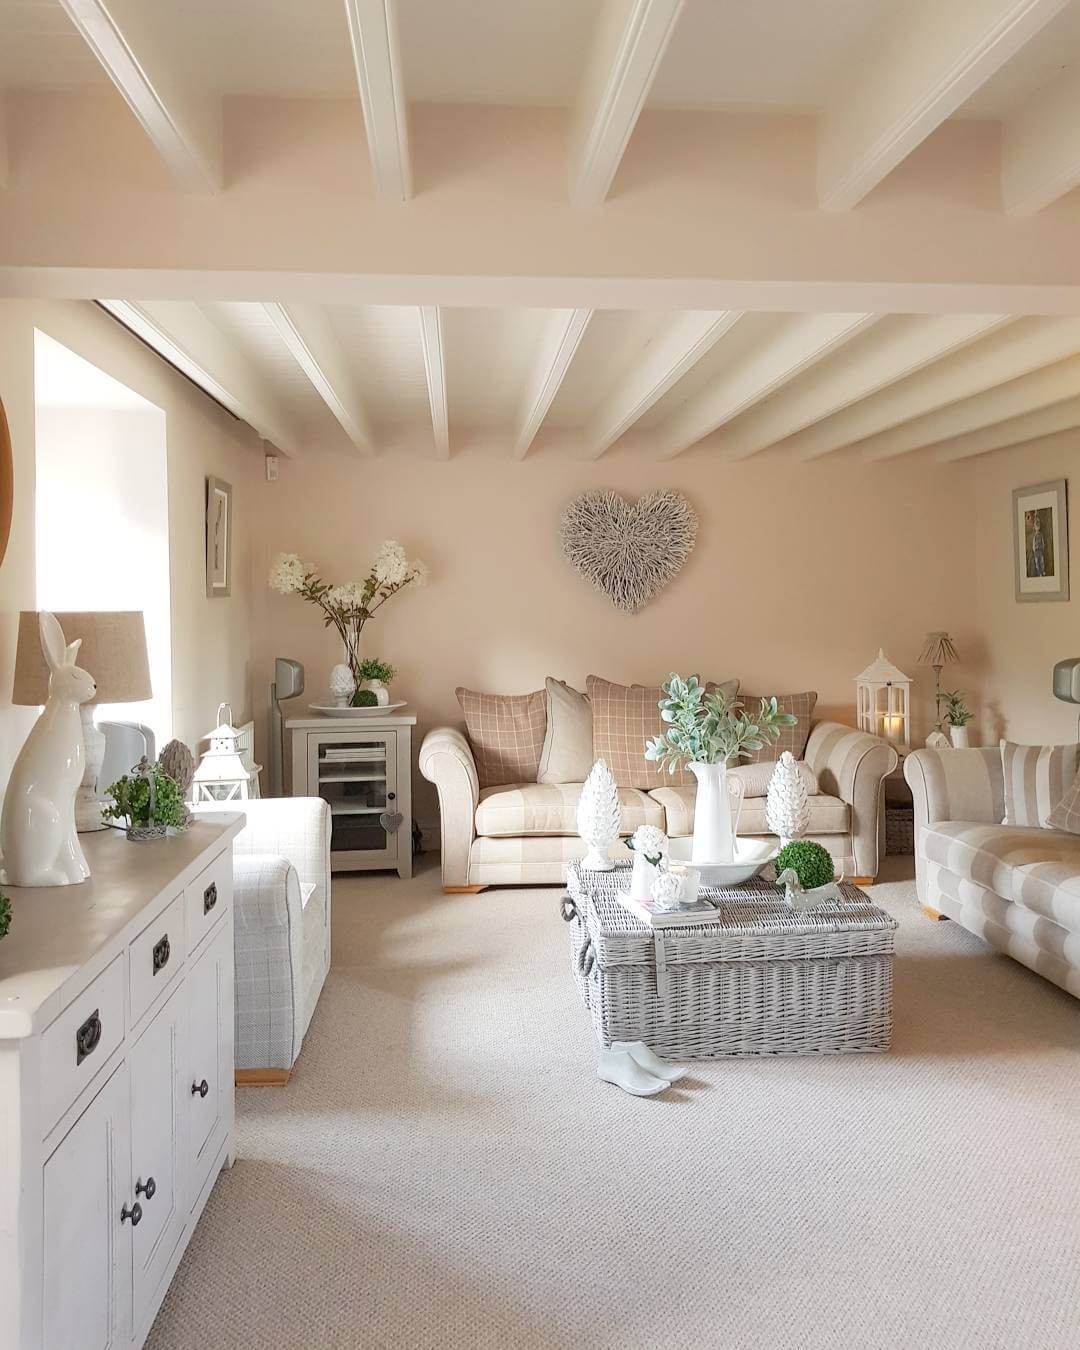 How to do modern country with a dash of danish - Hear what Colleen from West Barn Interiors has to say about it on www.lovetohome.co.uk